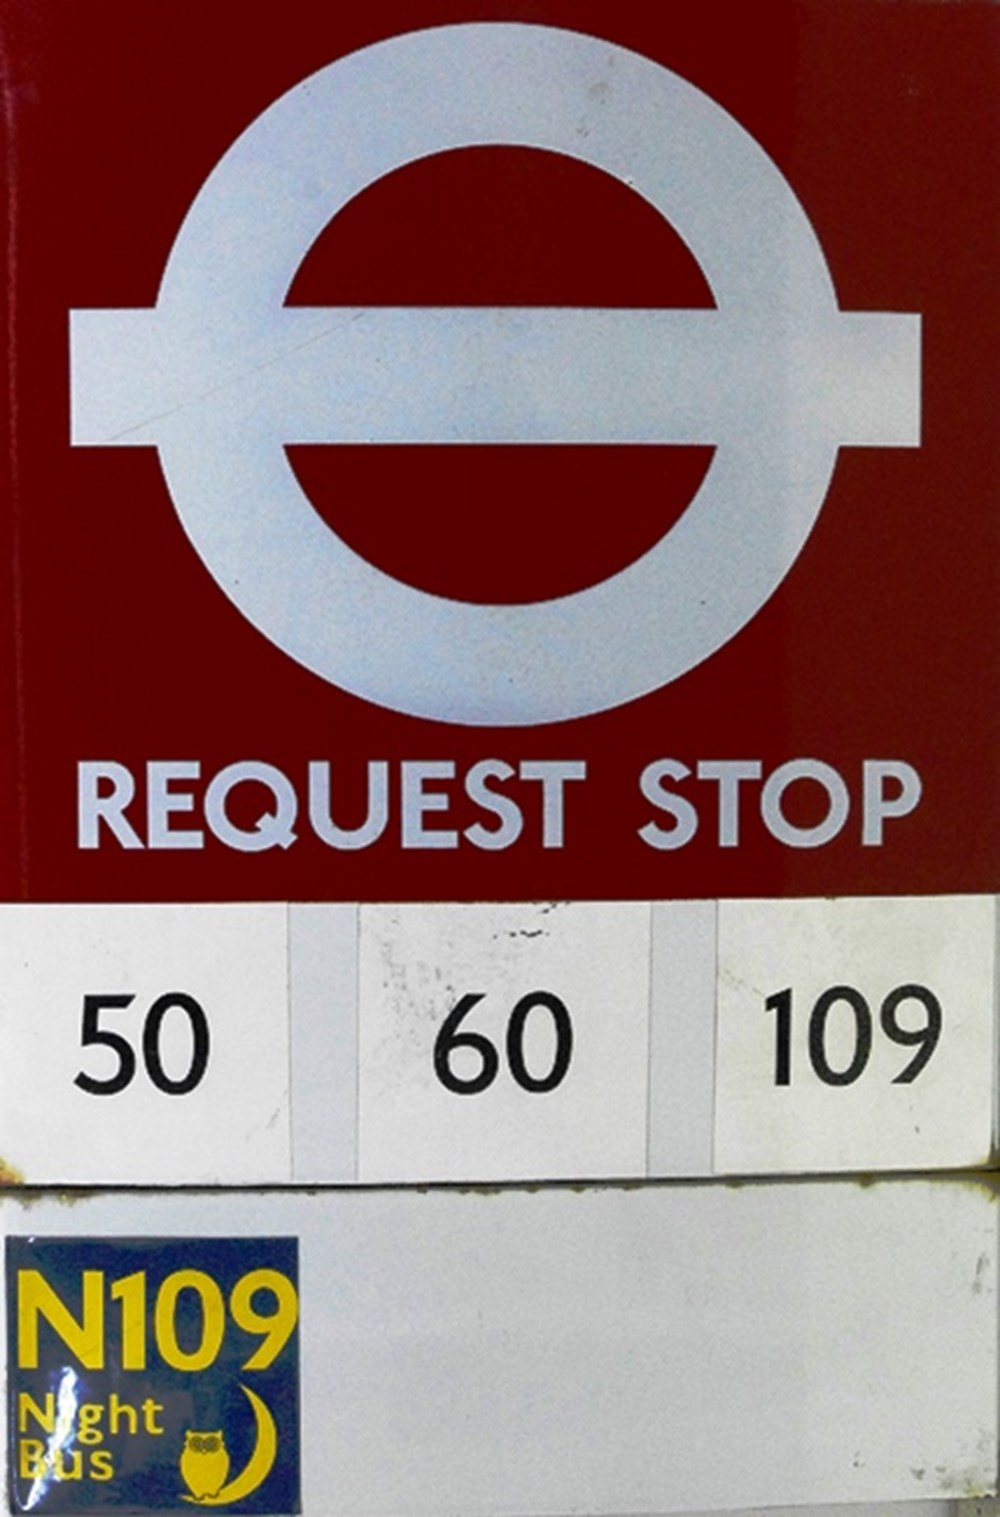 Lot 1 - A bus stop sign